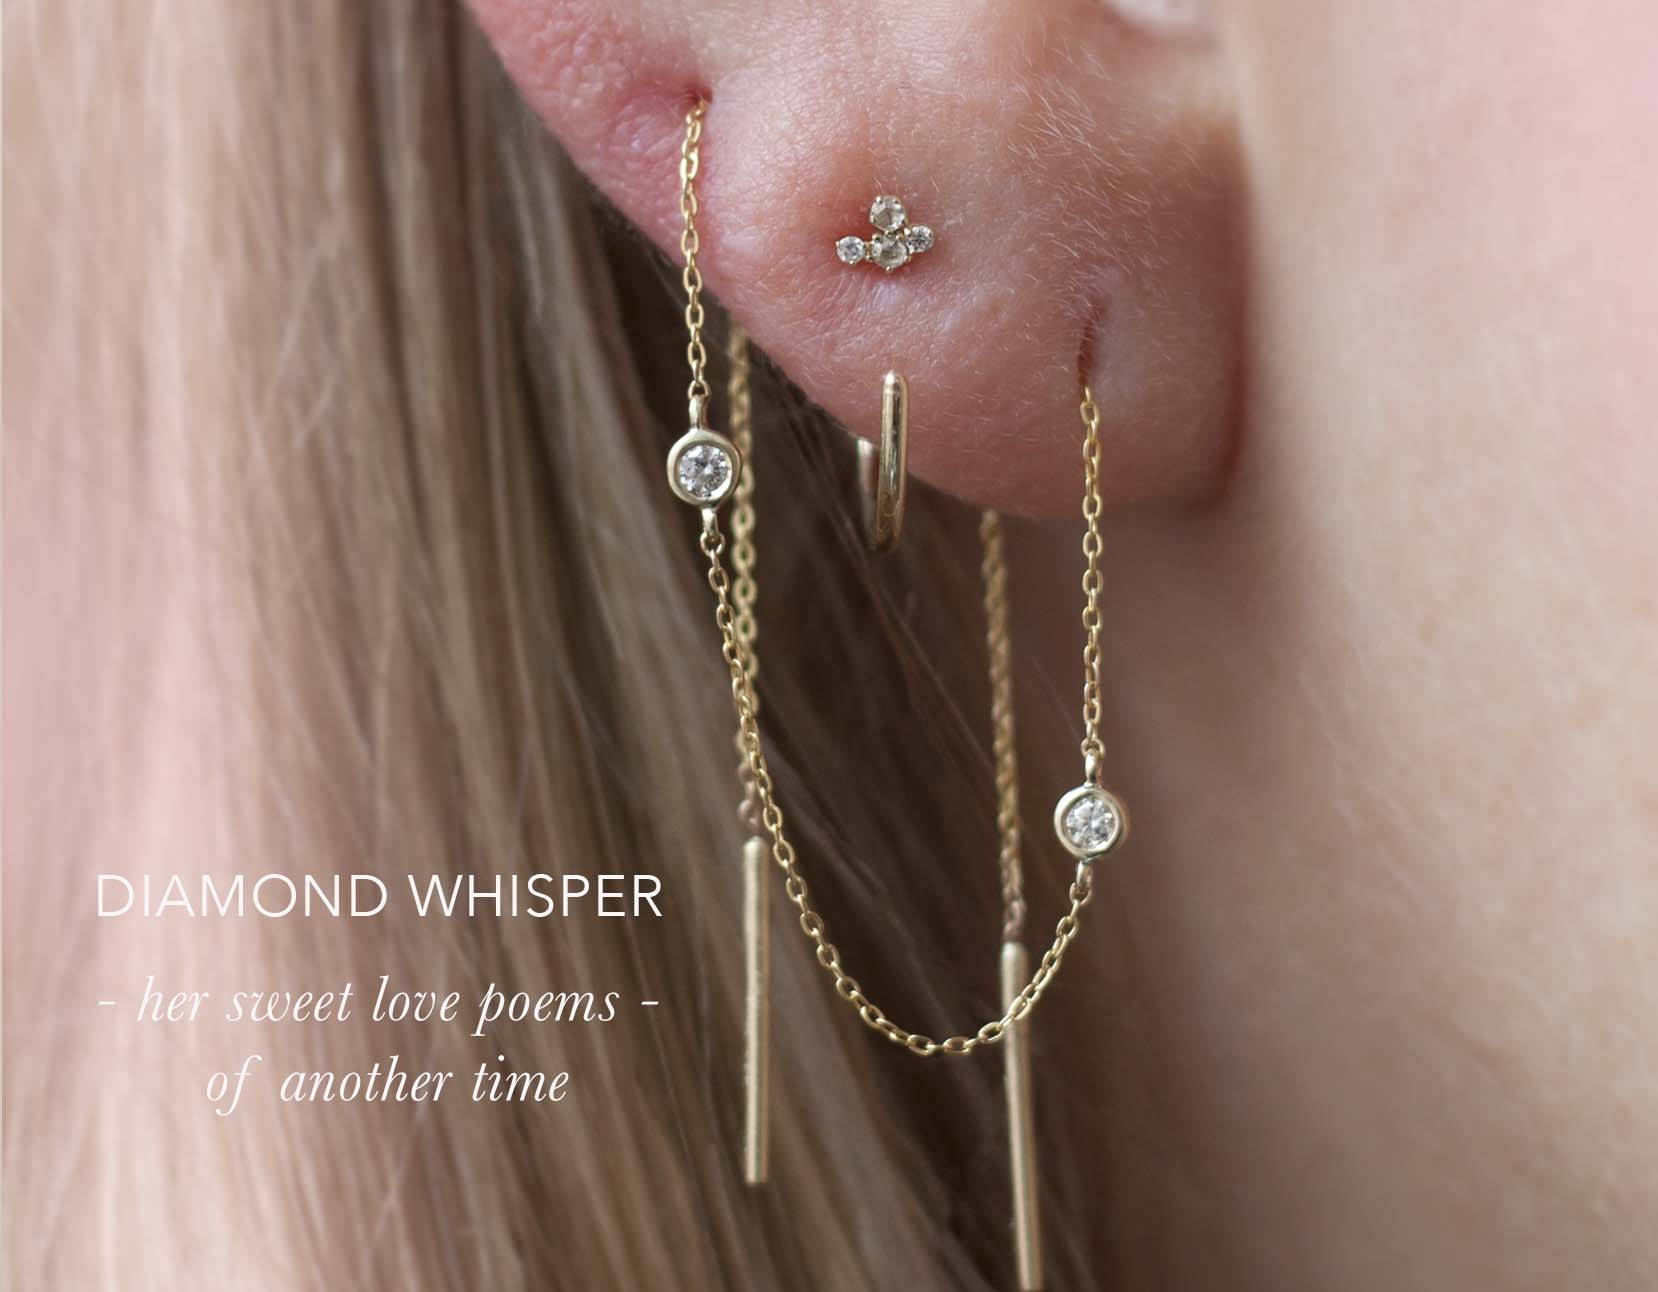 Diamond earrings, attached to a delicate 14k yellow gold chain threader. Wear as a pair for effortless style, or just one and  thread it in multiple piercings.